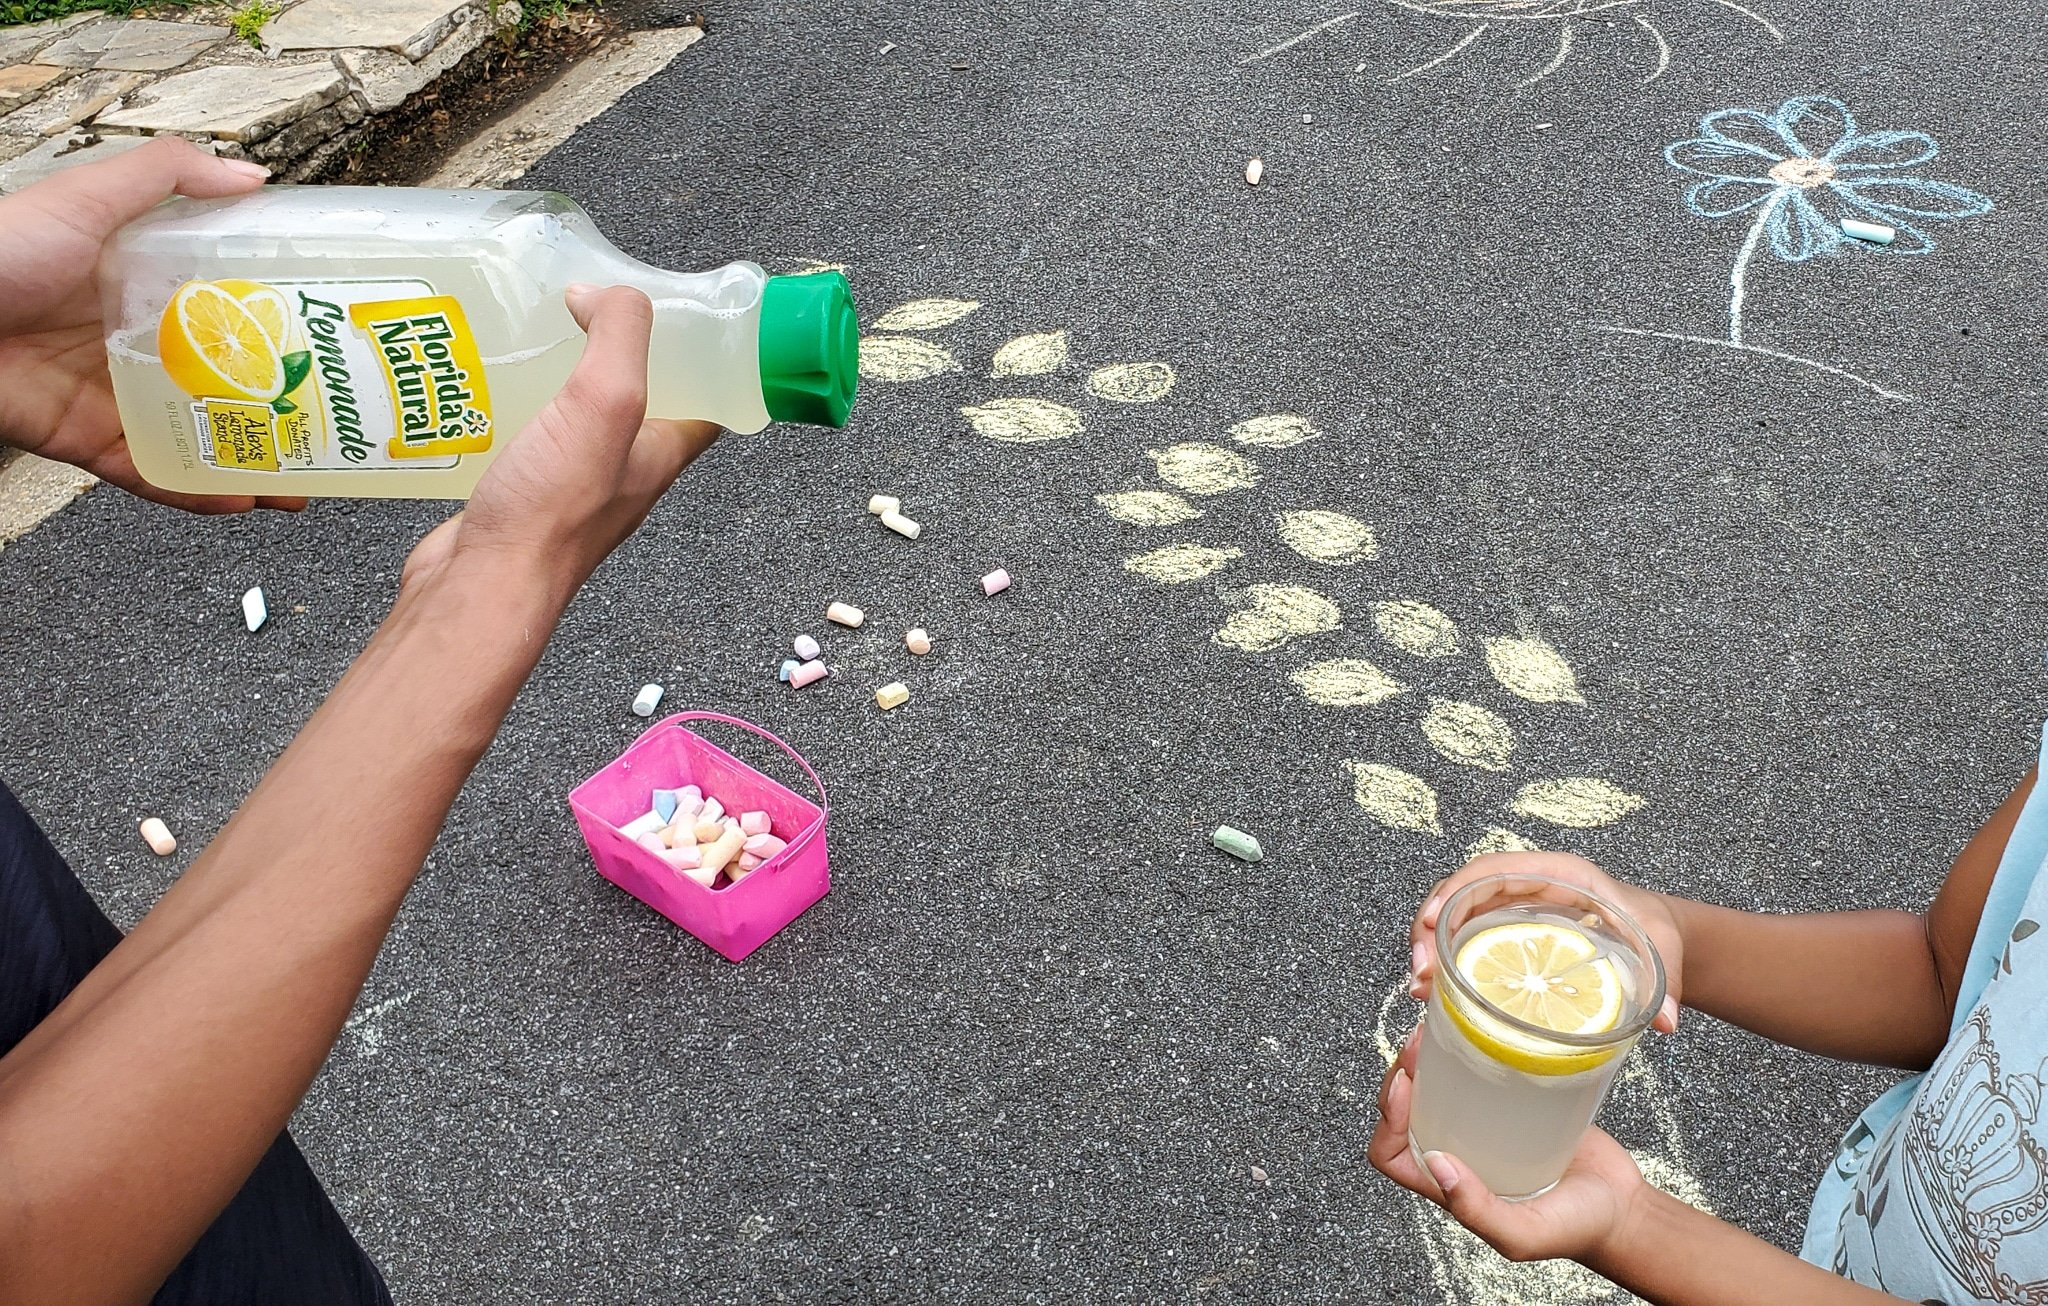 Lemonade Art Pouring Into Glass. Looking for a fun way to keep the kids entertained this summer? Celebrate the start of summer with Lemonade-Inspired Art In the Backyard.